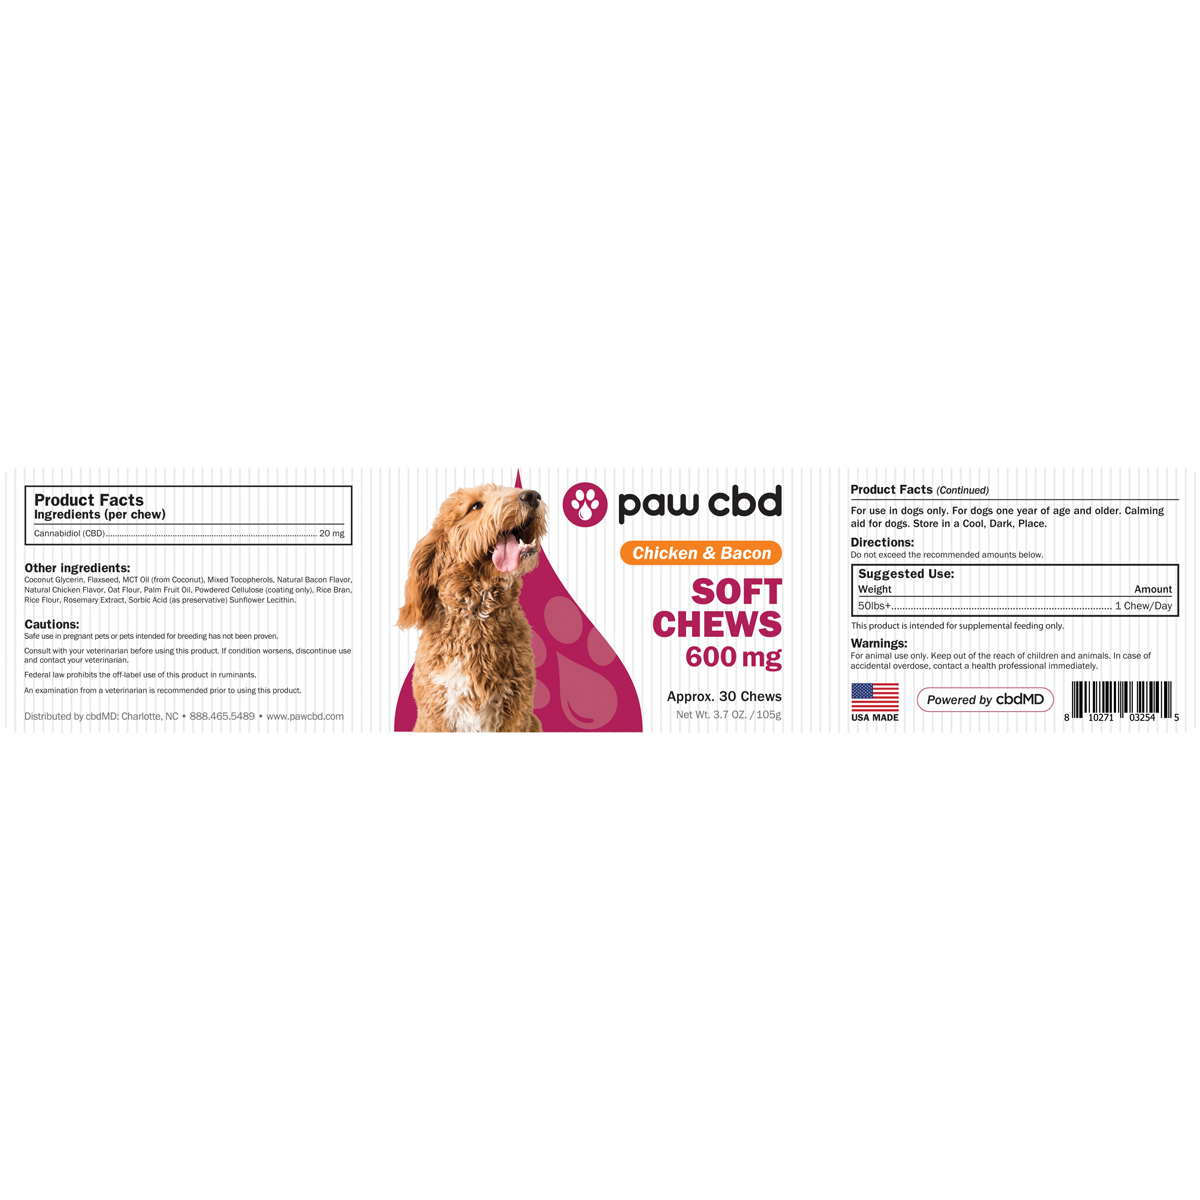 cbdMD | PAW CBD SOFT CHEWS FOR DOGS | 3 LEVELS |